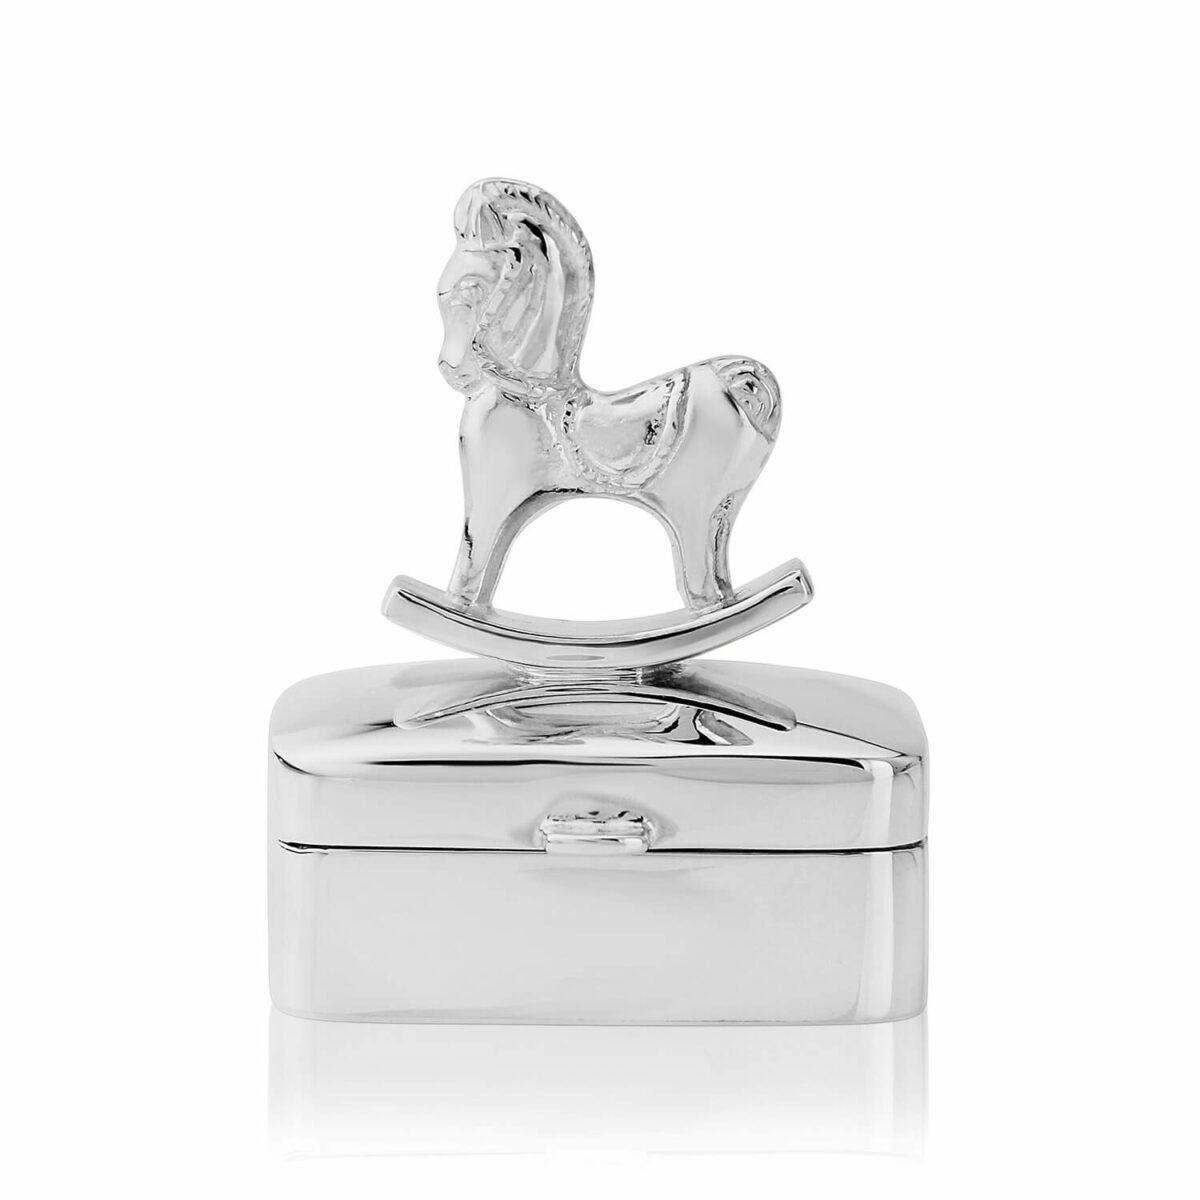 Rocking-Horse-Trinket-Box